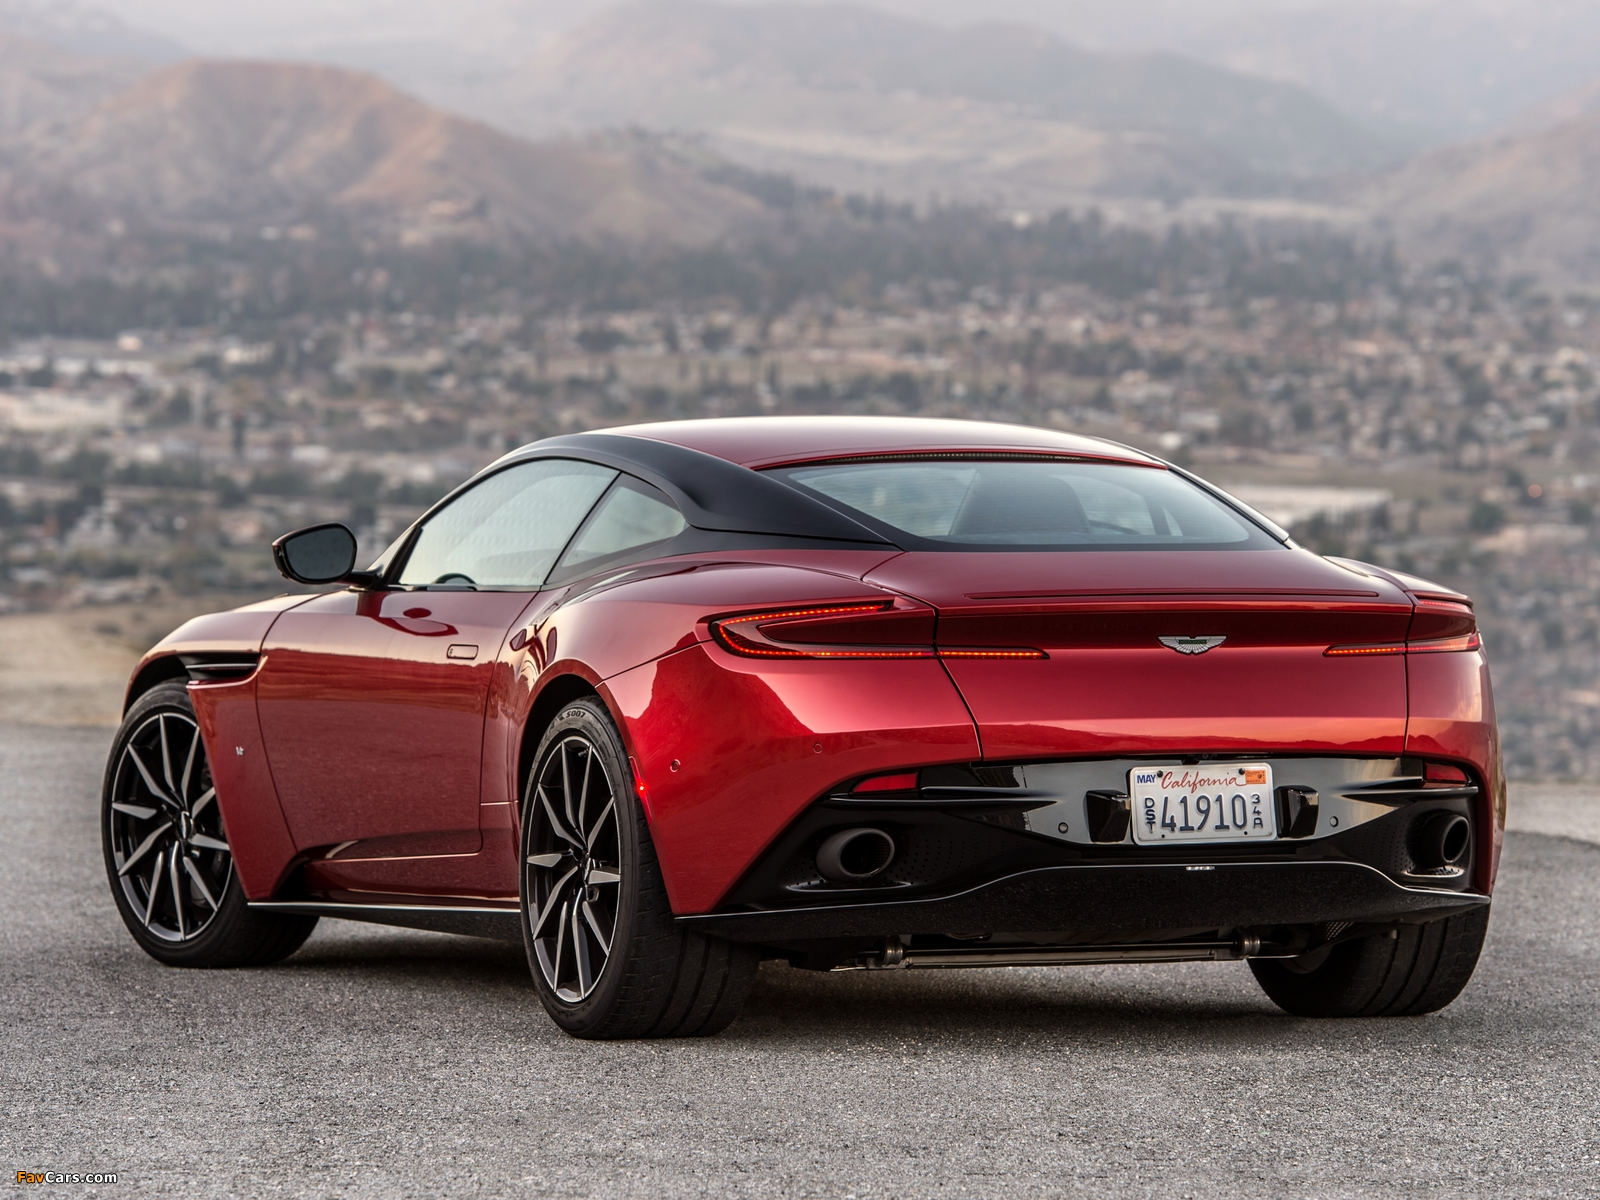 aston martin db11 wallpapers with Aston Martin Db11 North America 2016 Images 427581 1600x1200 on Mosque Abu Dhabi Wallpaper as well Aston Martin Vantage 2019 further Westminster Palace London Wallpaper also Sauber C37 Alfa Romeo F1 2018 Formula 1 F1 Cars 2018 4k 12475 also Dreamy Fantasy Wallpapers.